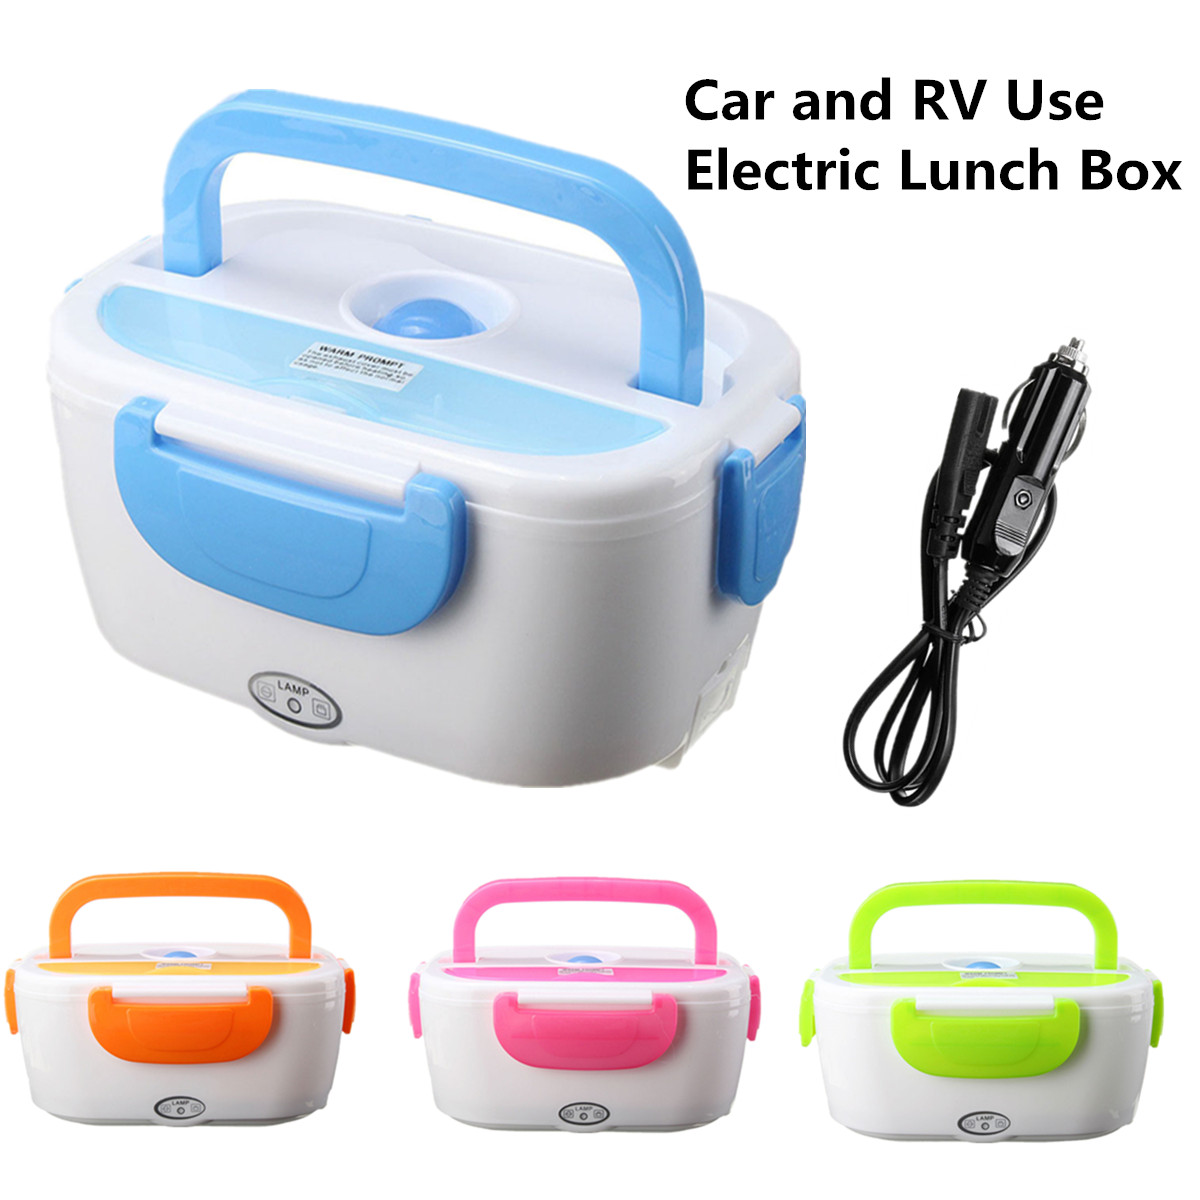 Portable 12V Electric Heating Food Warmer Lunch Box Food Storage Meal Heater with Plug Adapter for Boat Car and RV